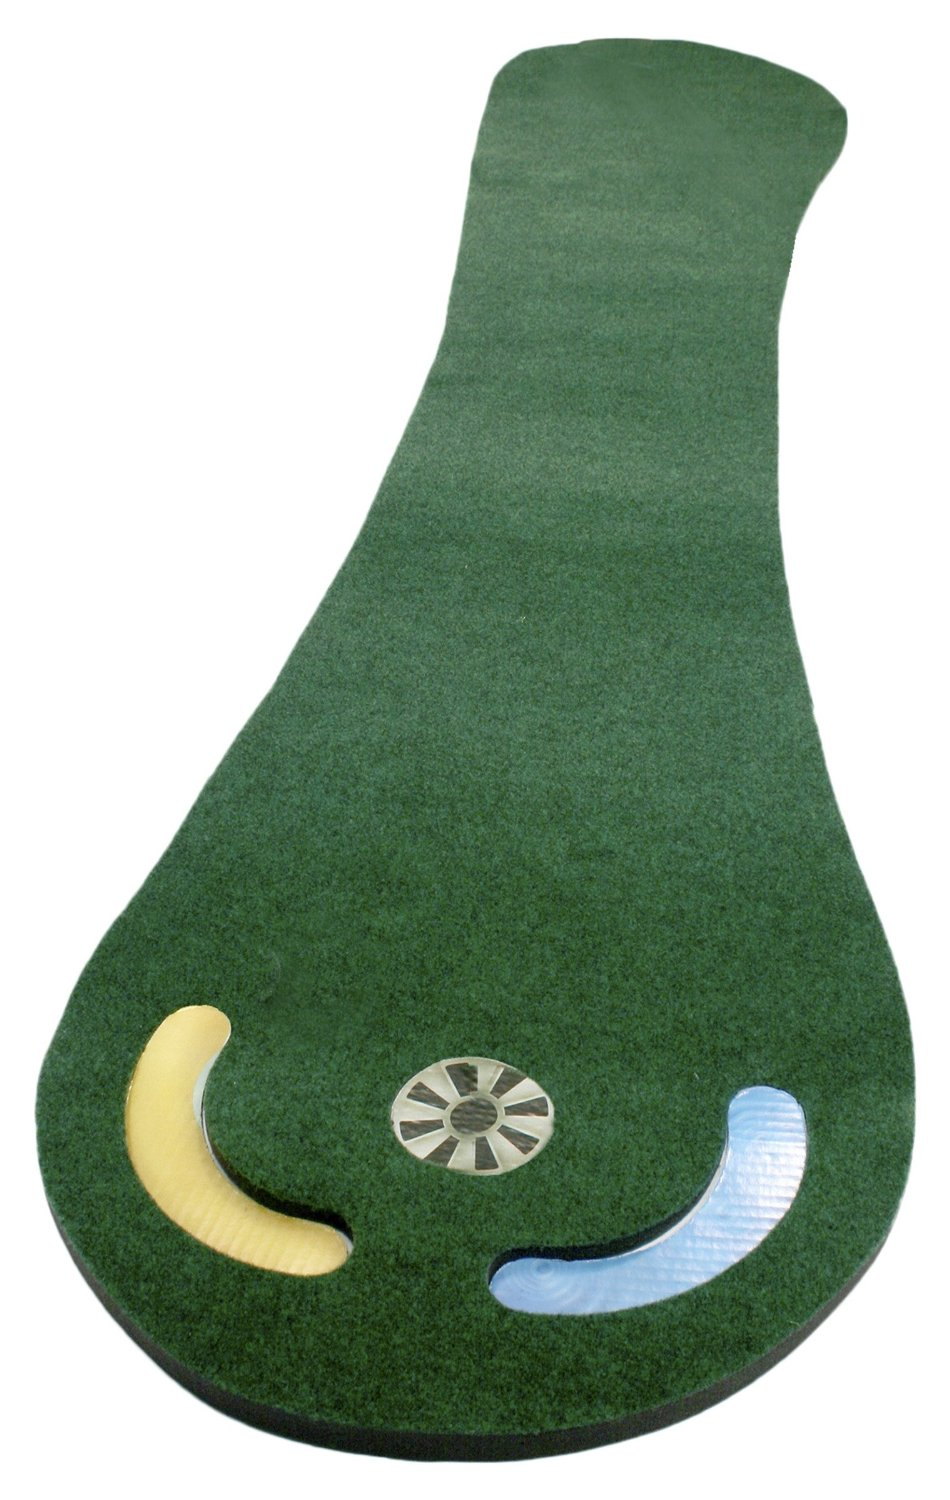 Grassroots Putting Mat